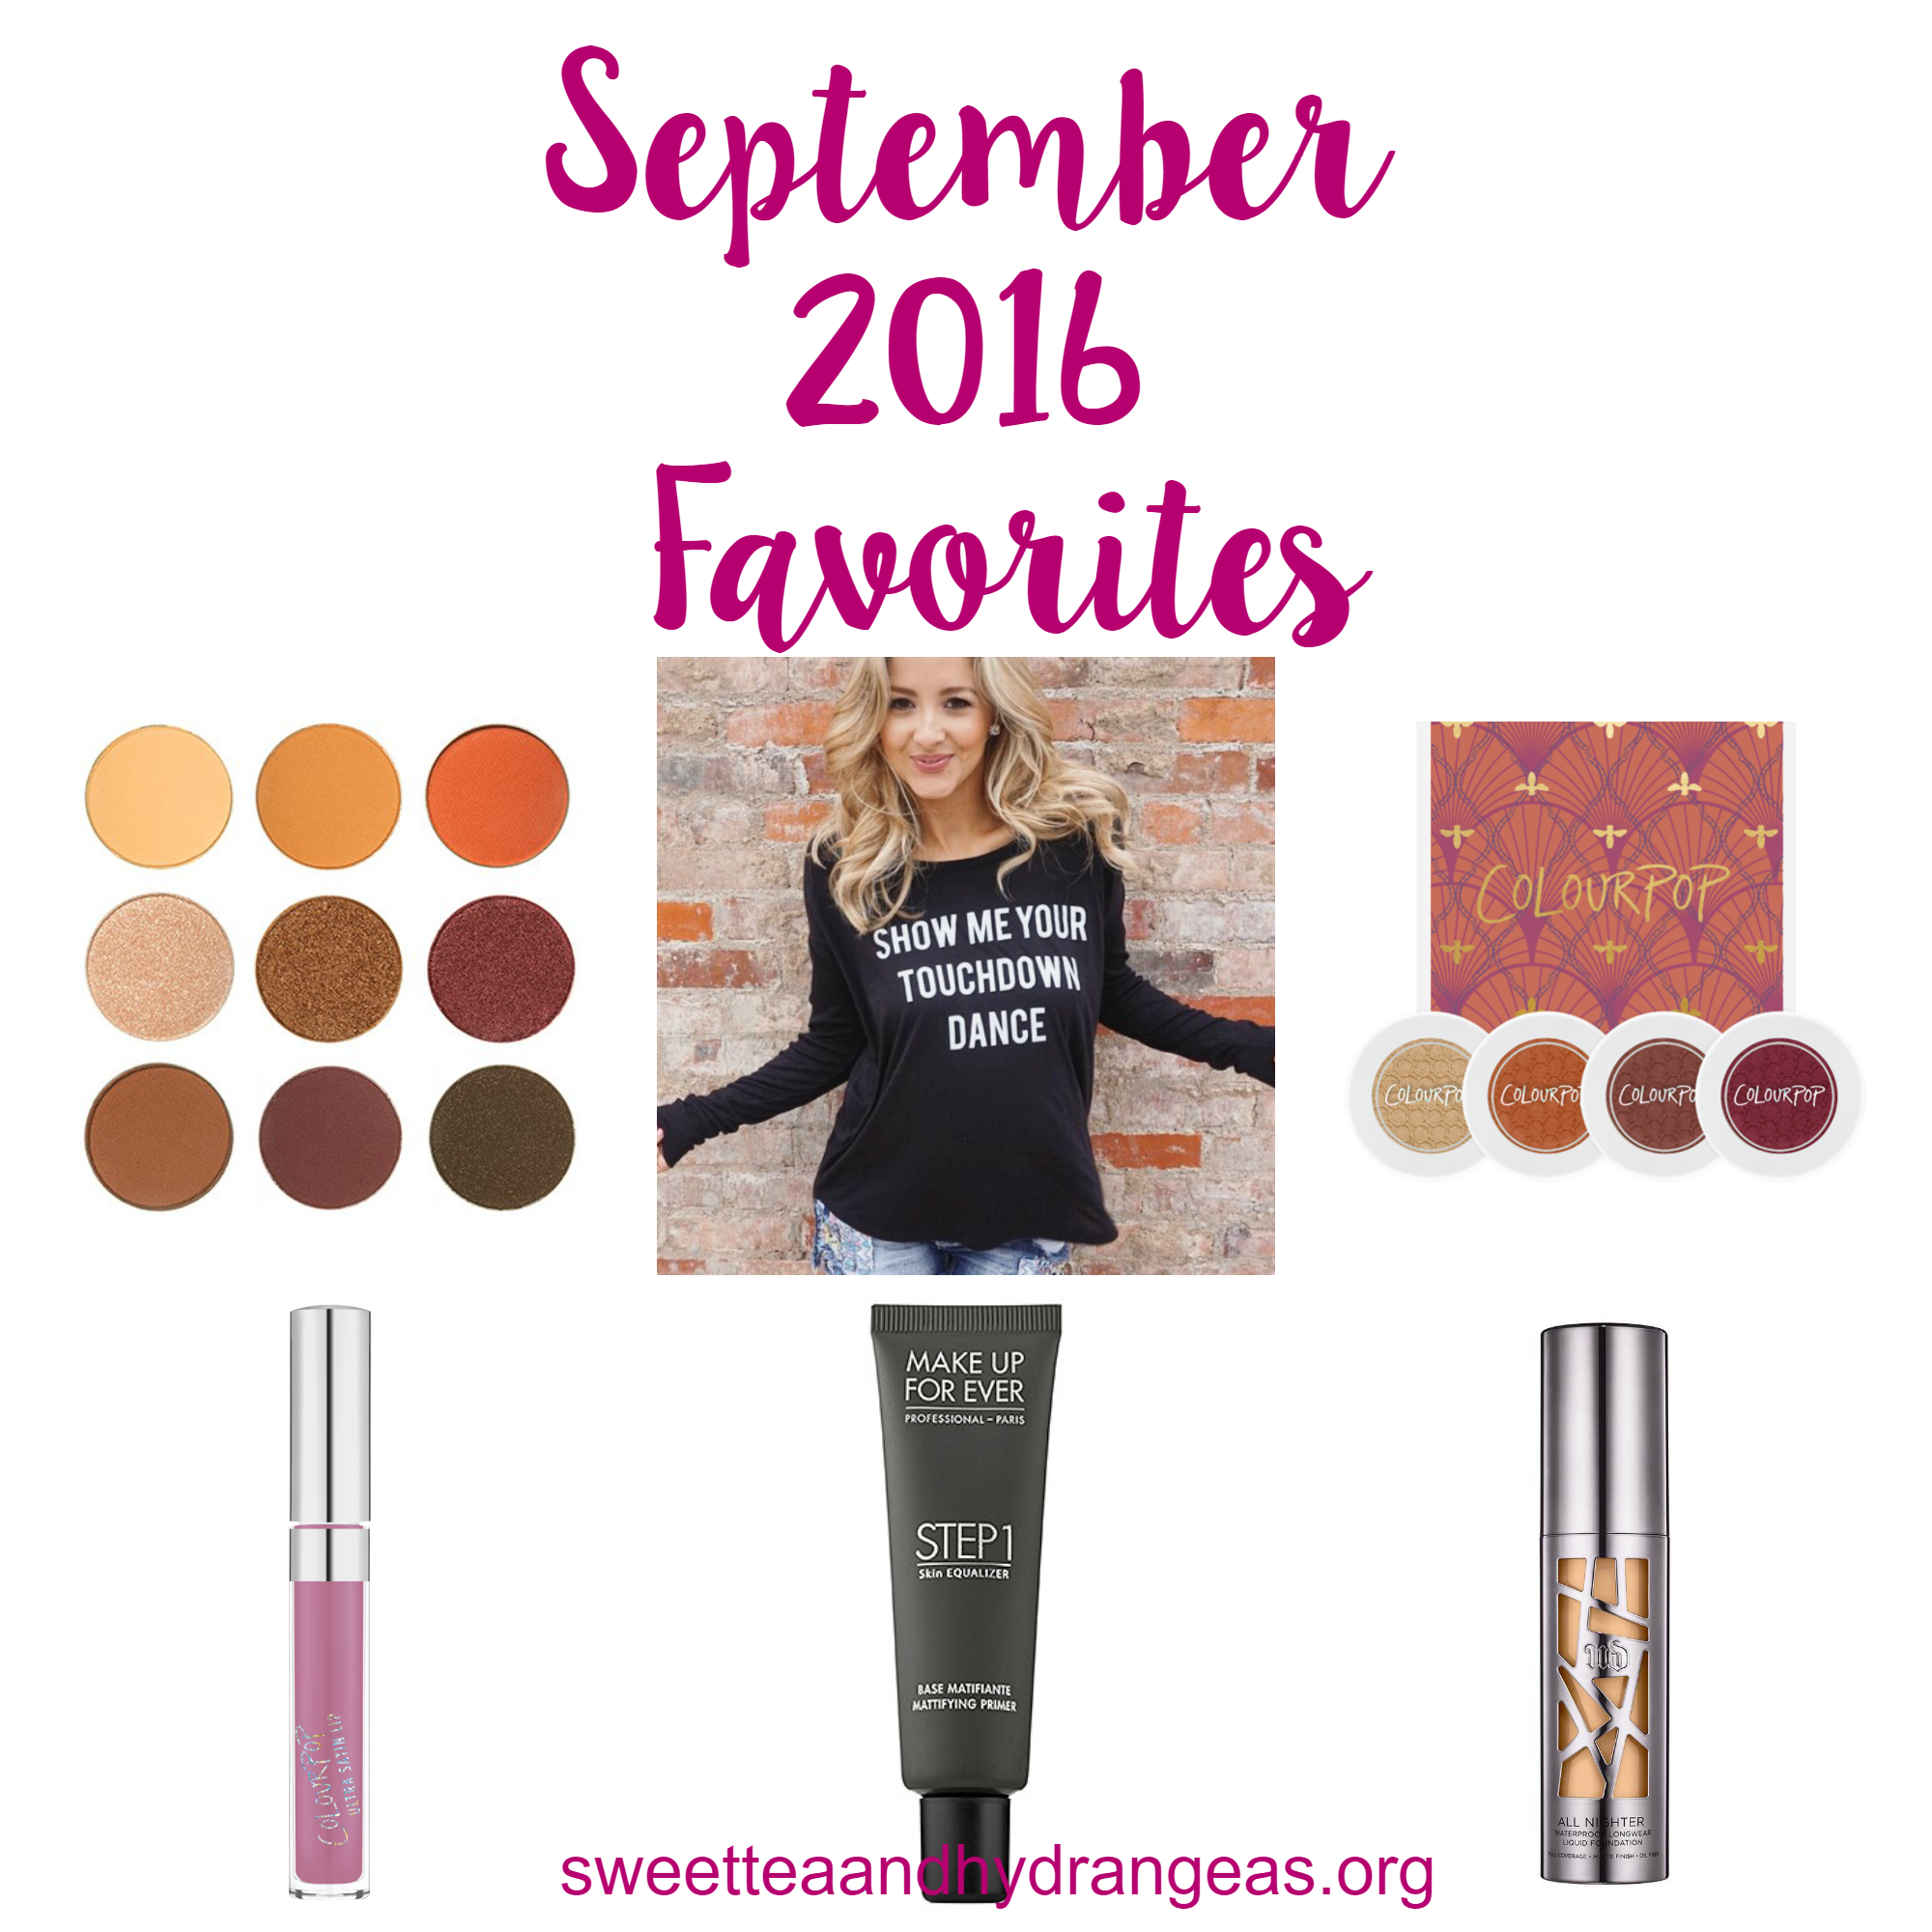 septemberfavorites16